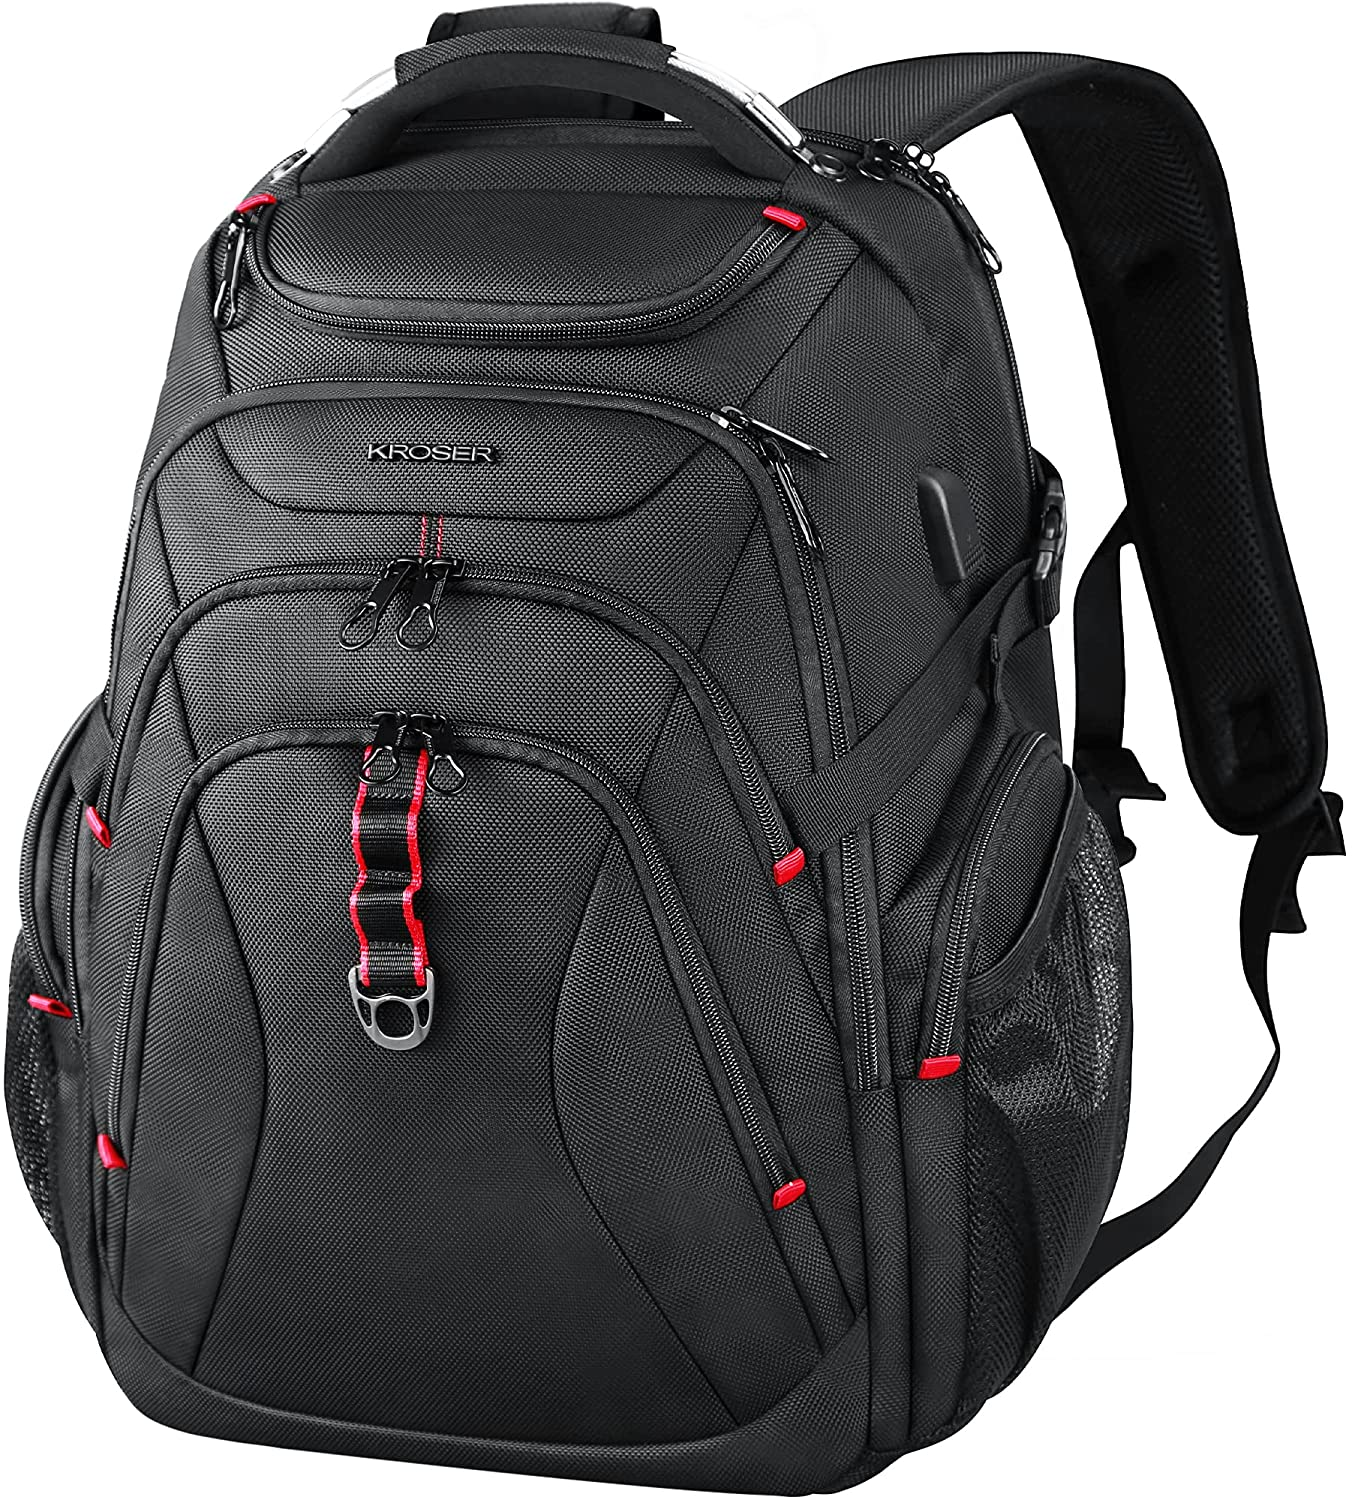 BAG Backpack Travel Outdoor Backpack Large Capacity Luggage Multi-Function Hiking Backpack Sports Backpack Computer Backpack